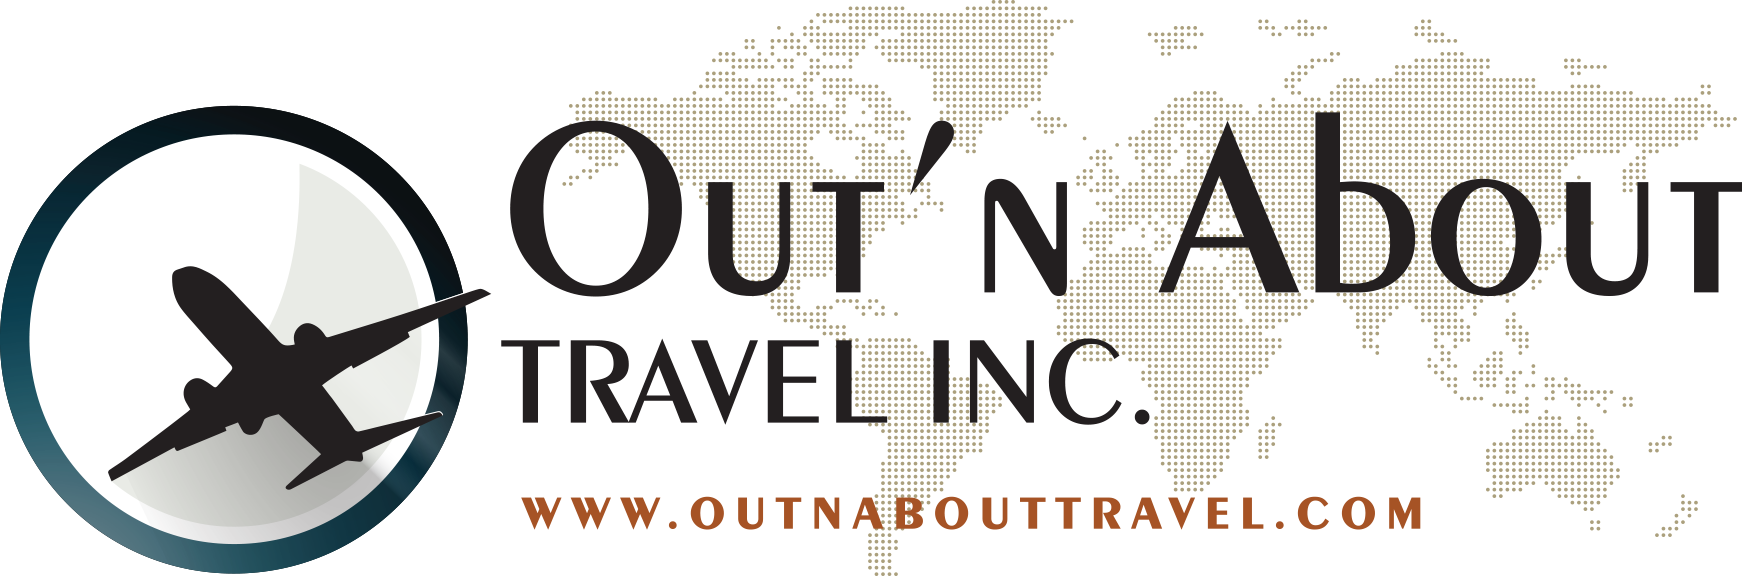 OutNAboutTravel_Logo_colour_lightbg.png